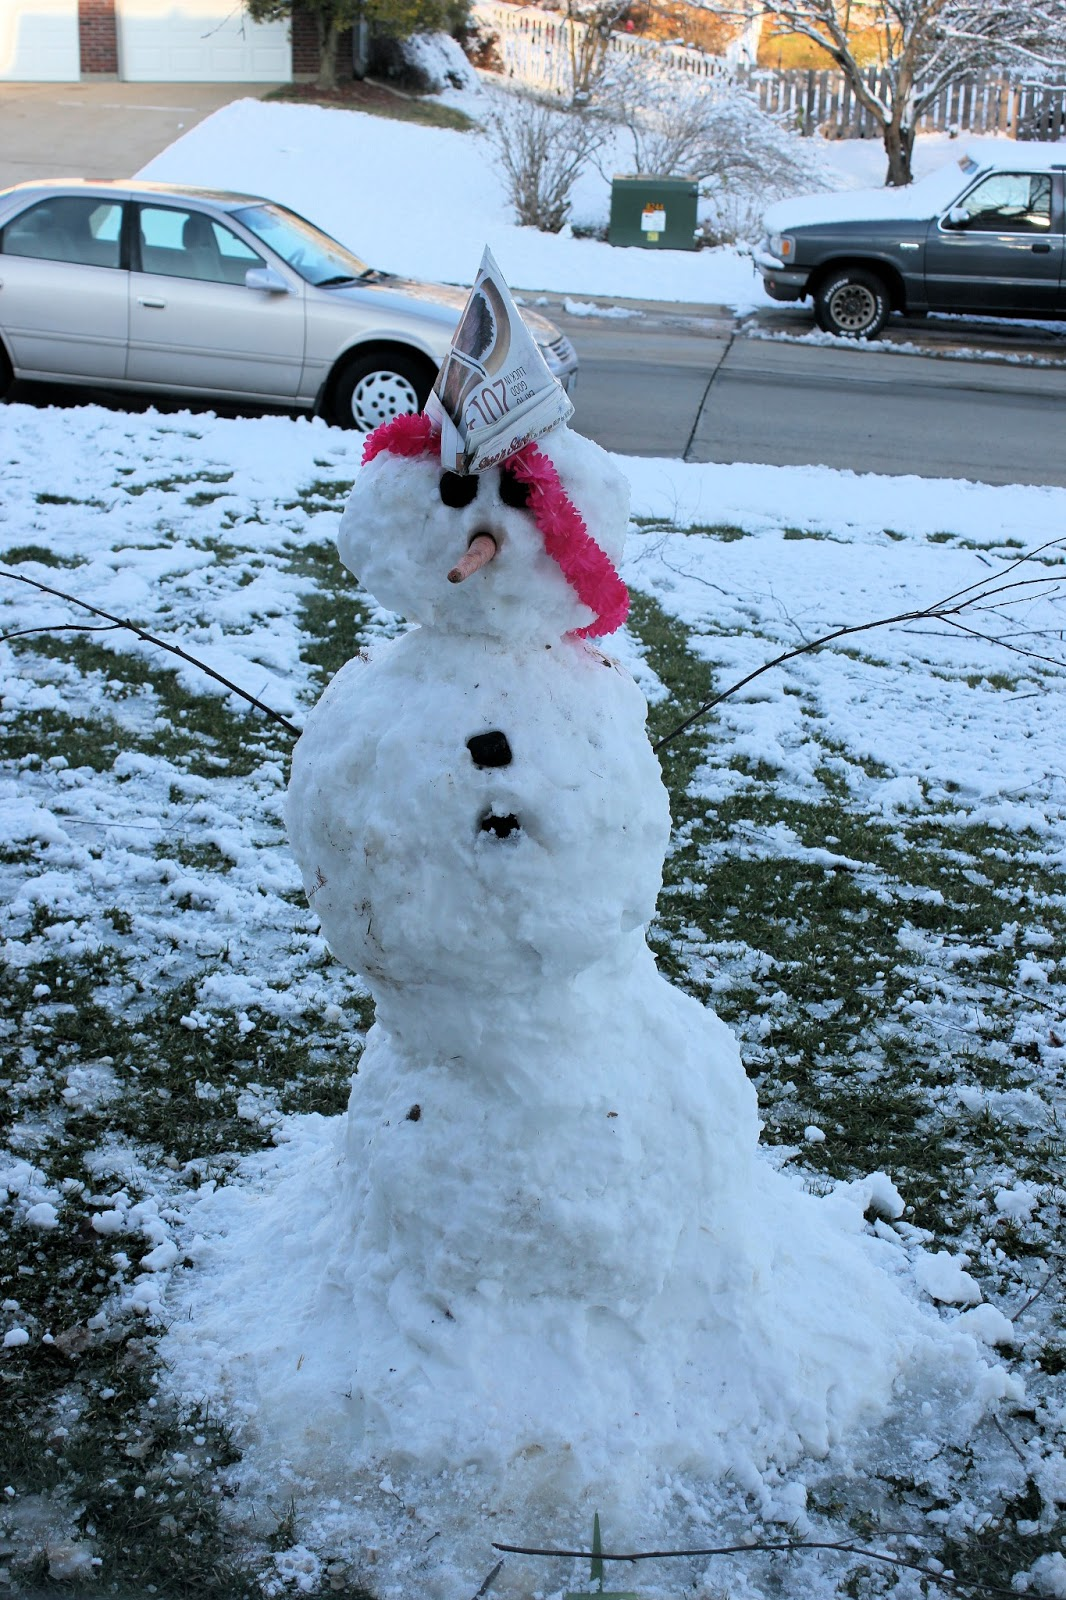 paralyzed with joy once there was a snowman